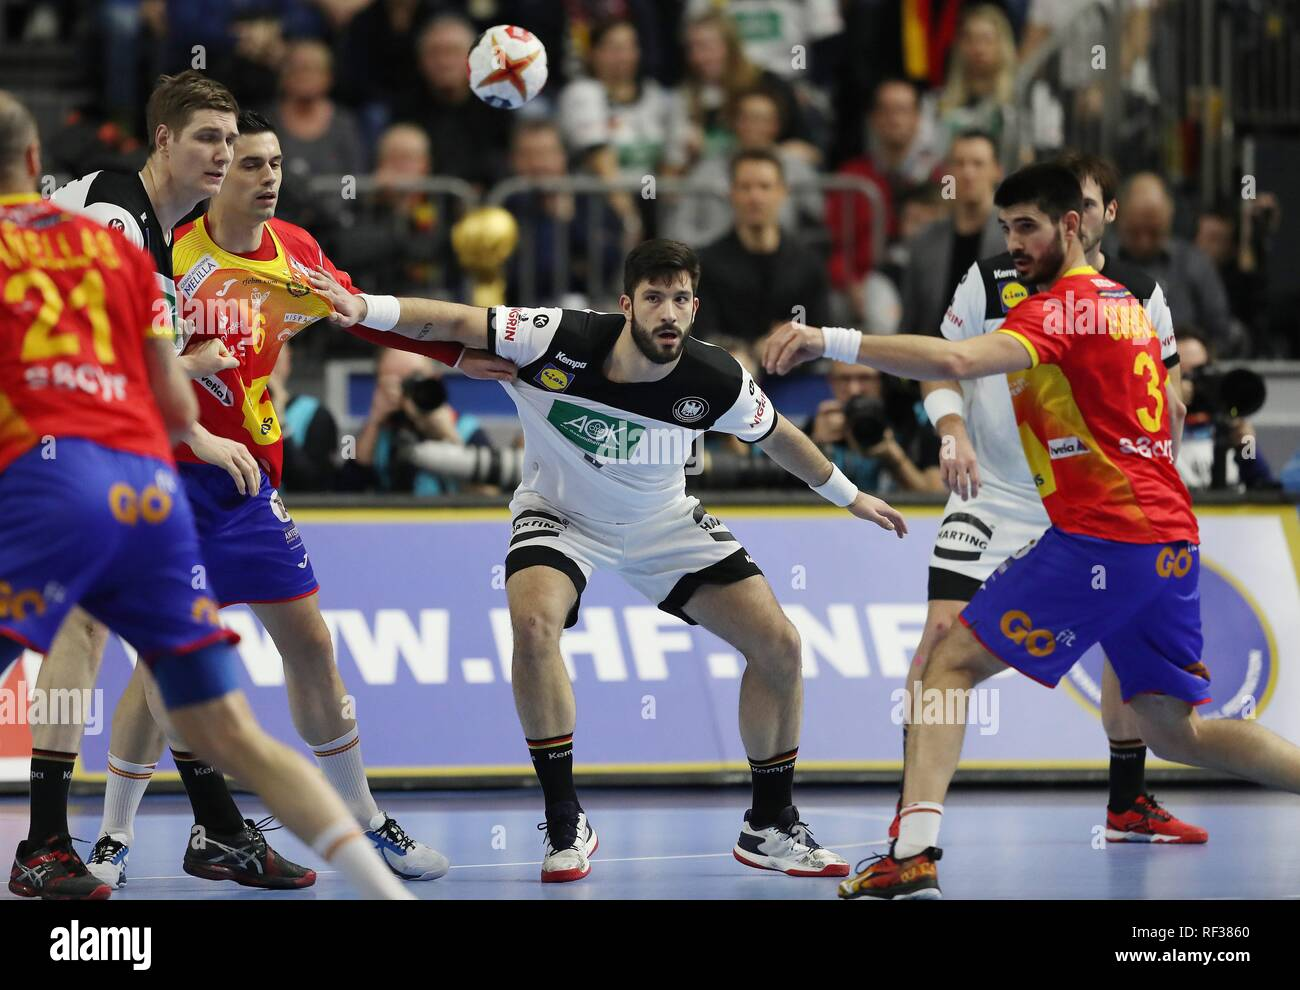 firo: 23.01.2019, Handball: World Cup World Cup Main Round Germany - Spain tim suton, ger | usage worldwide - Stock Image